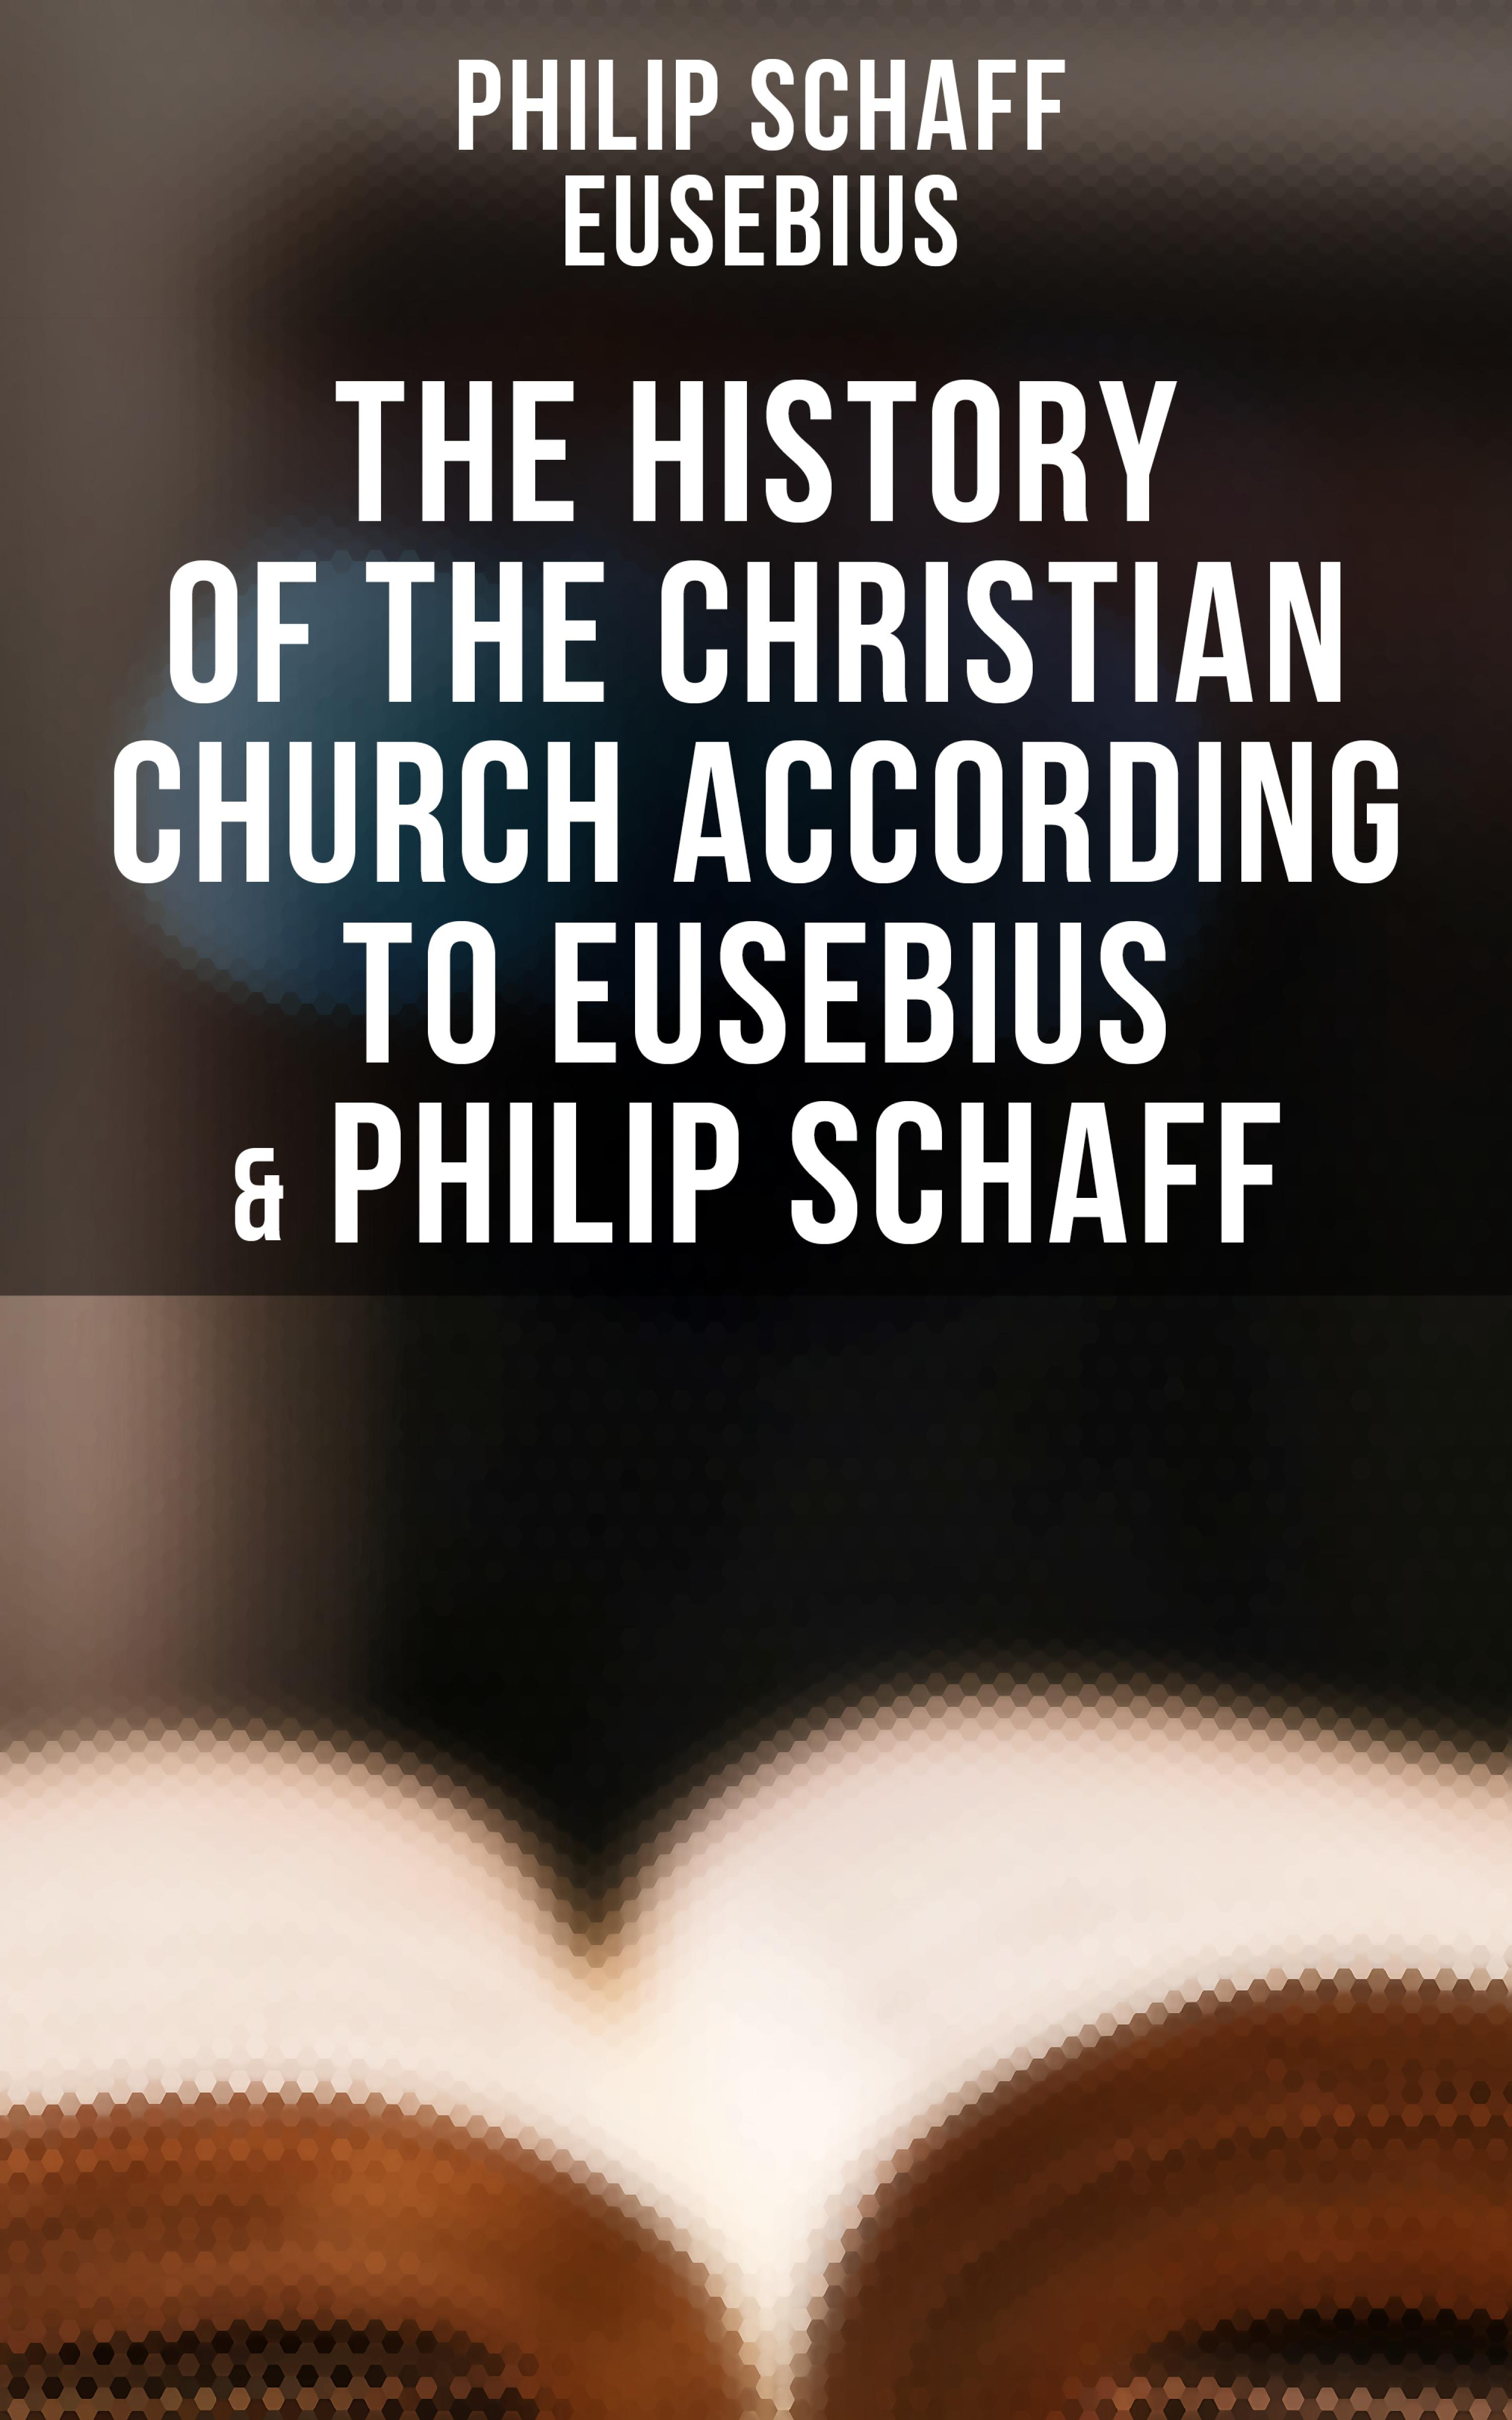 Eusebius The History of the Christian Church According to Eusebius & Philip Schaff charlie musselwhite the harmonica according to lp